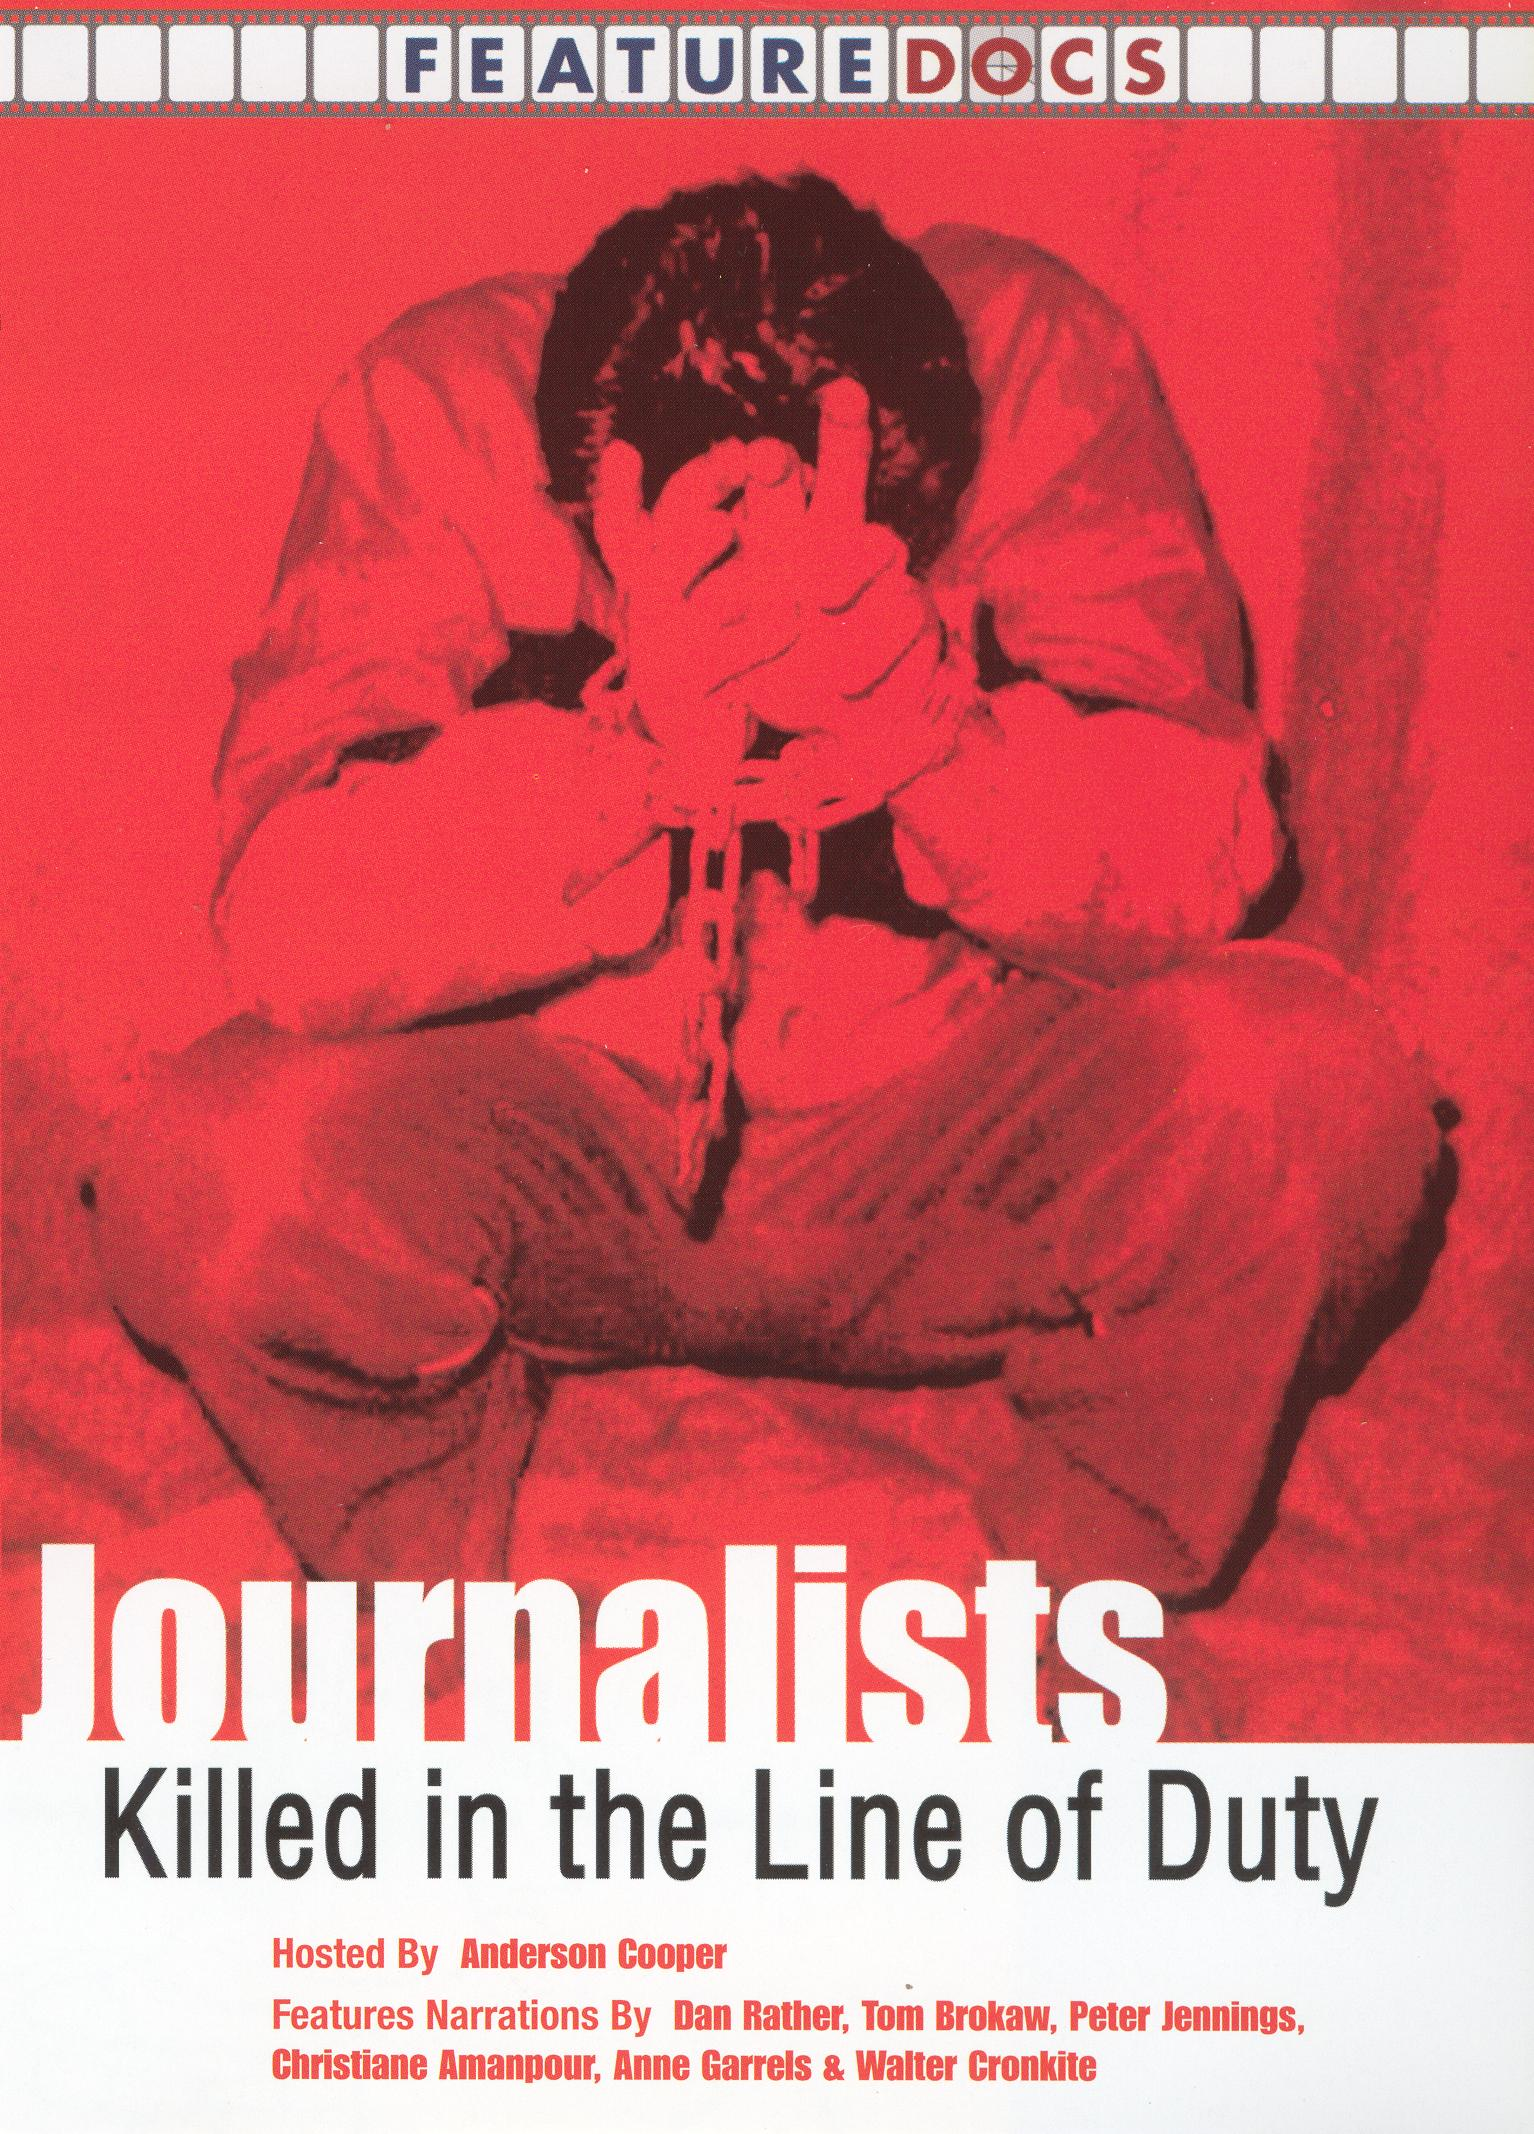 Journalists Killed in the Line of Duty